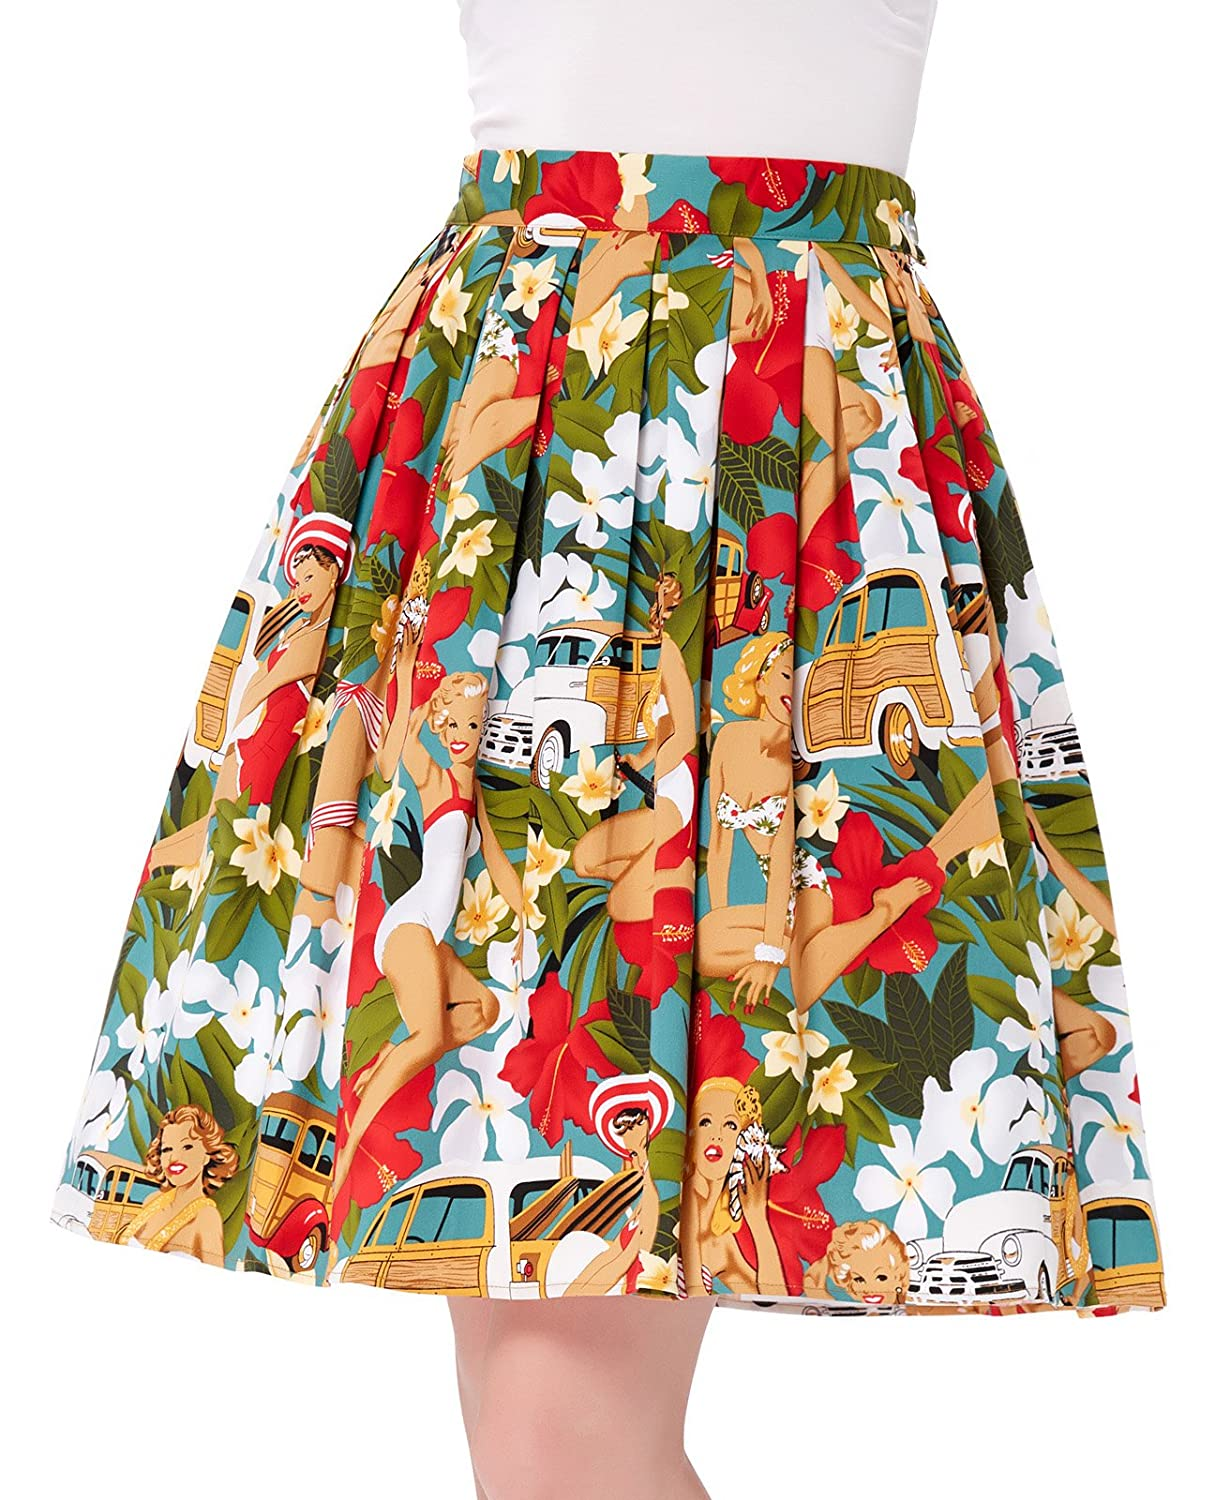 1950s Skirts; Pinup, Poodle, Pencil, Swing & Circle Skirts Tiki Pleated Vintage Skirts Floral Print CL6294 (Multi-Colored)  AT vintagedancer.com